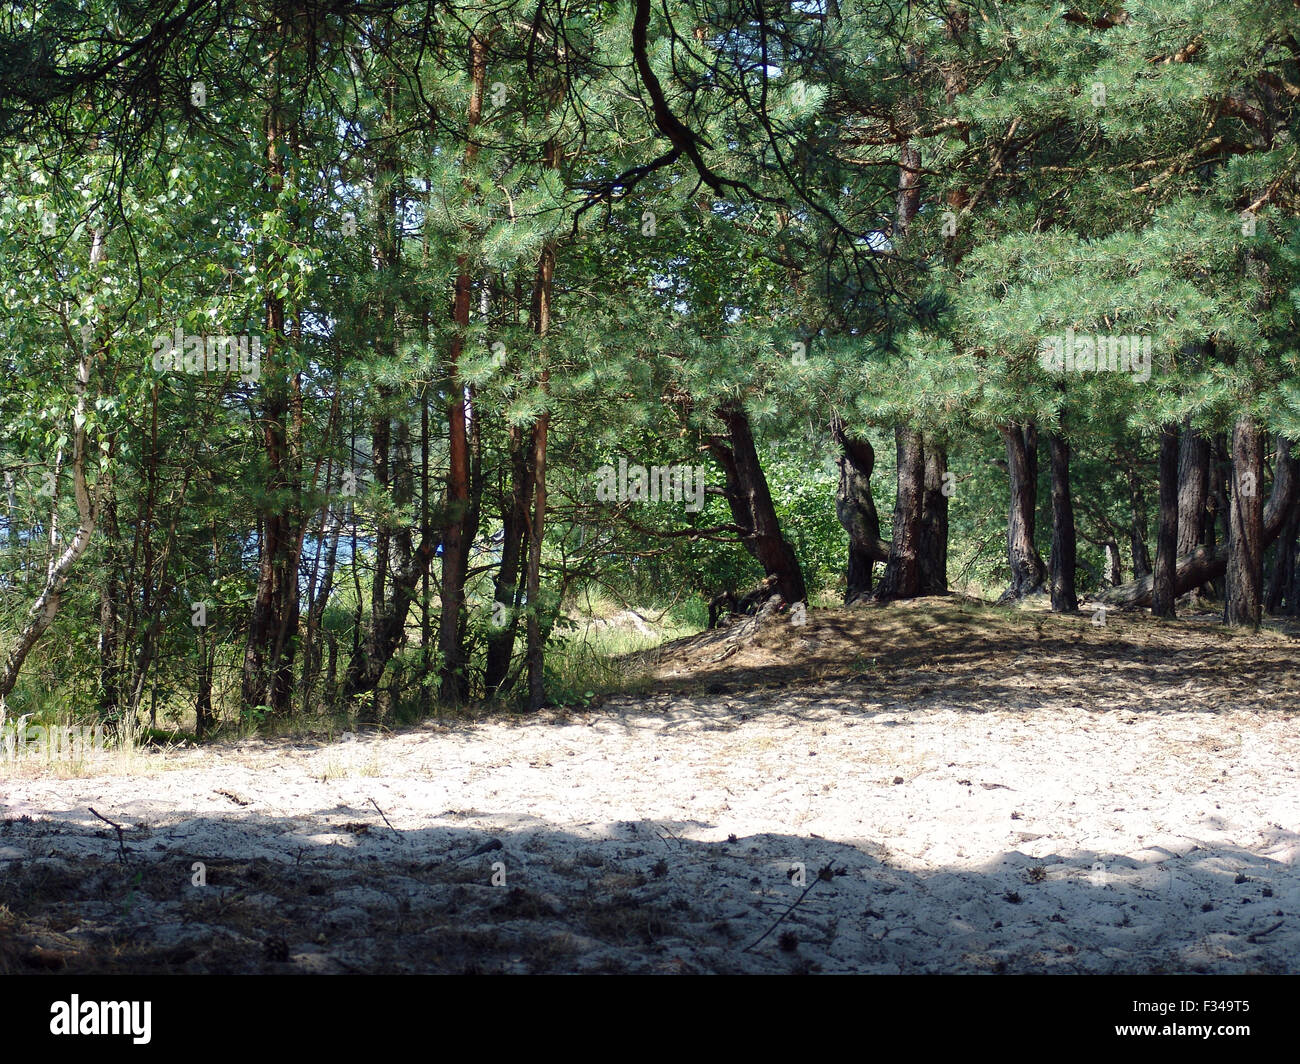 The woods sandy beach, beautiful wild nature landscape - Stock Image